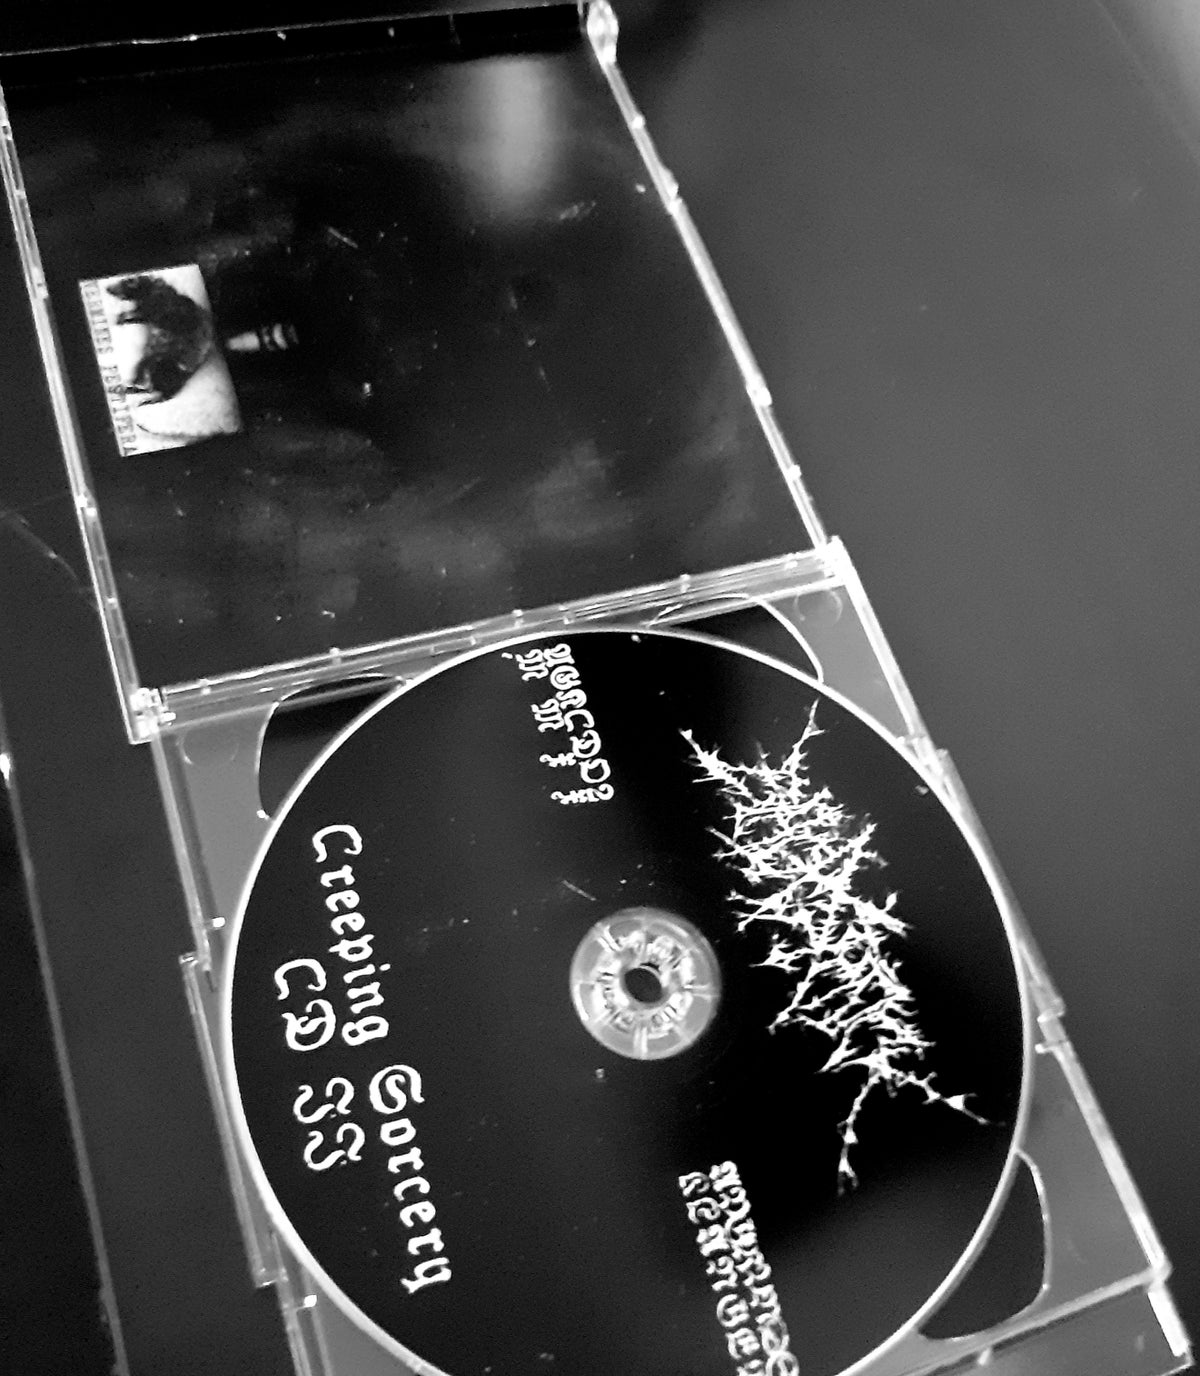 AGKCD02 - Black Stench - Creeping Sorcery 2xCD